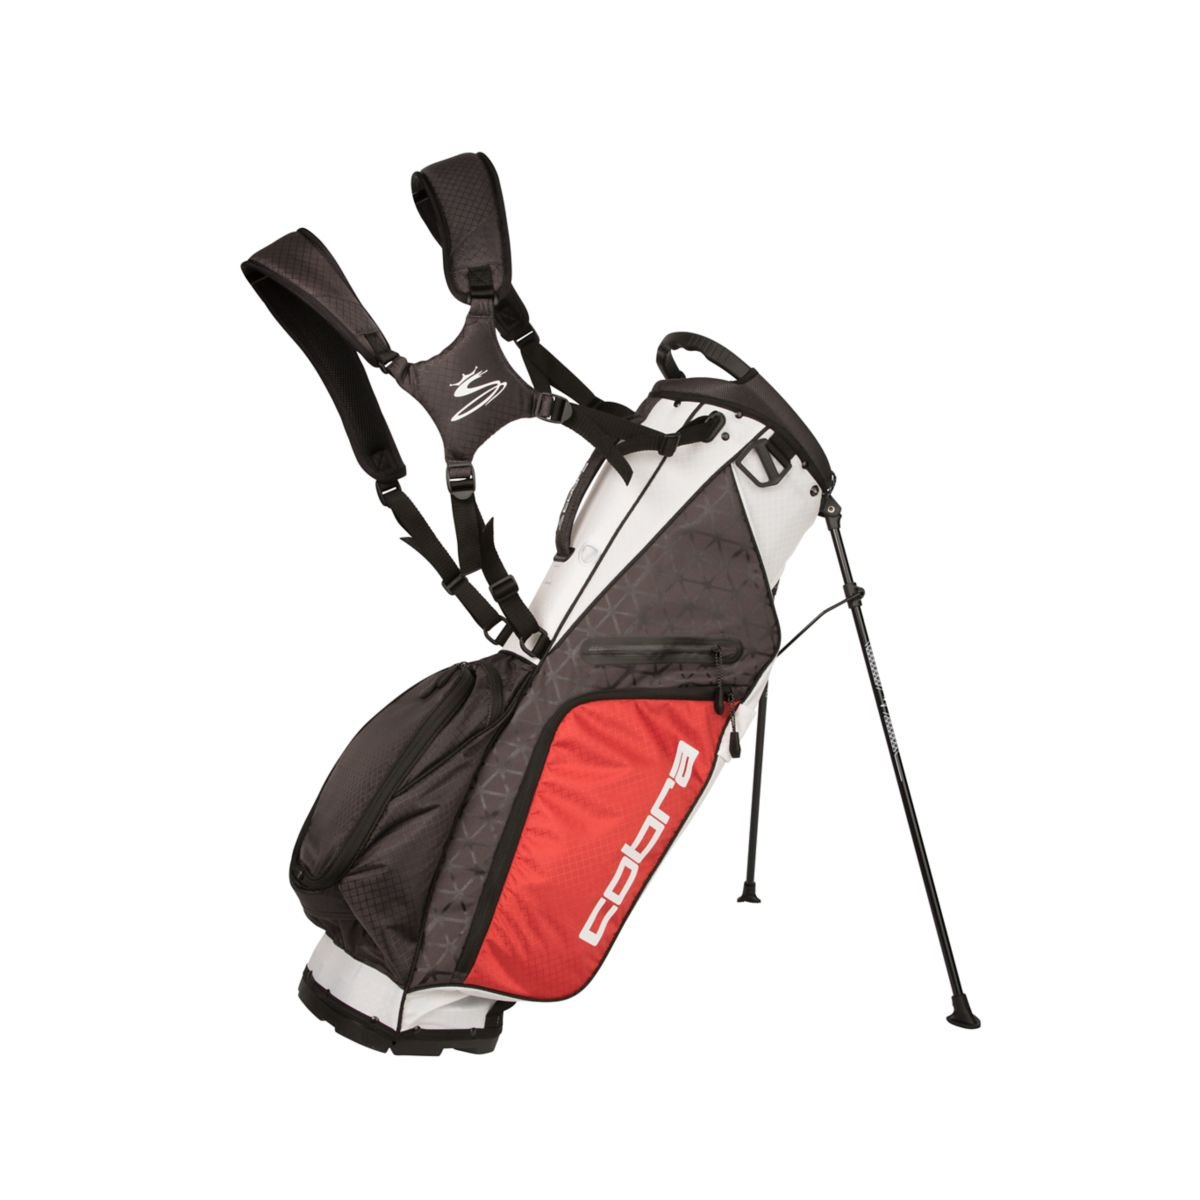 Amazon.com: Cobra Bolsa de golf Ultralite 2017, Rojo, osfa ...